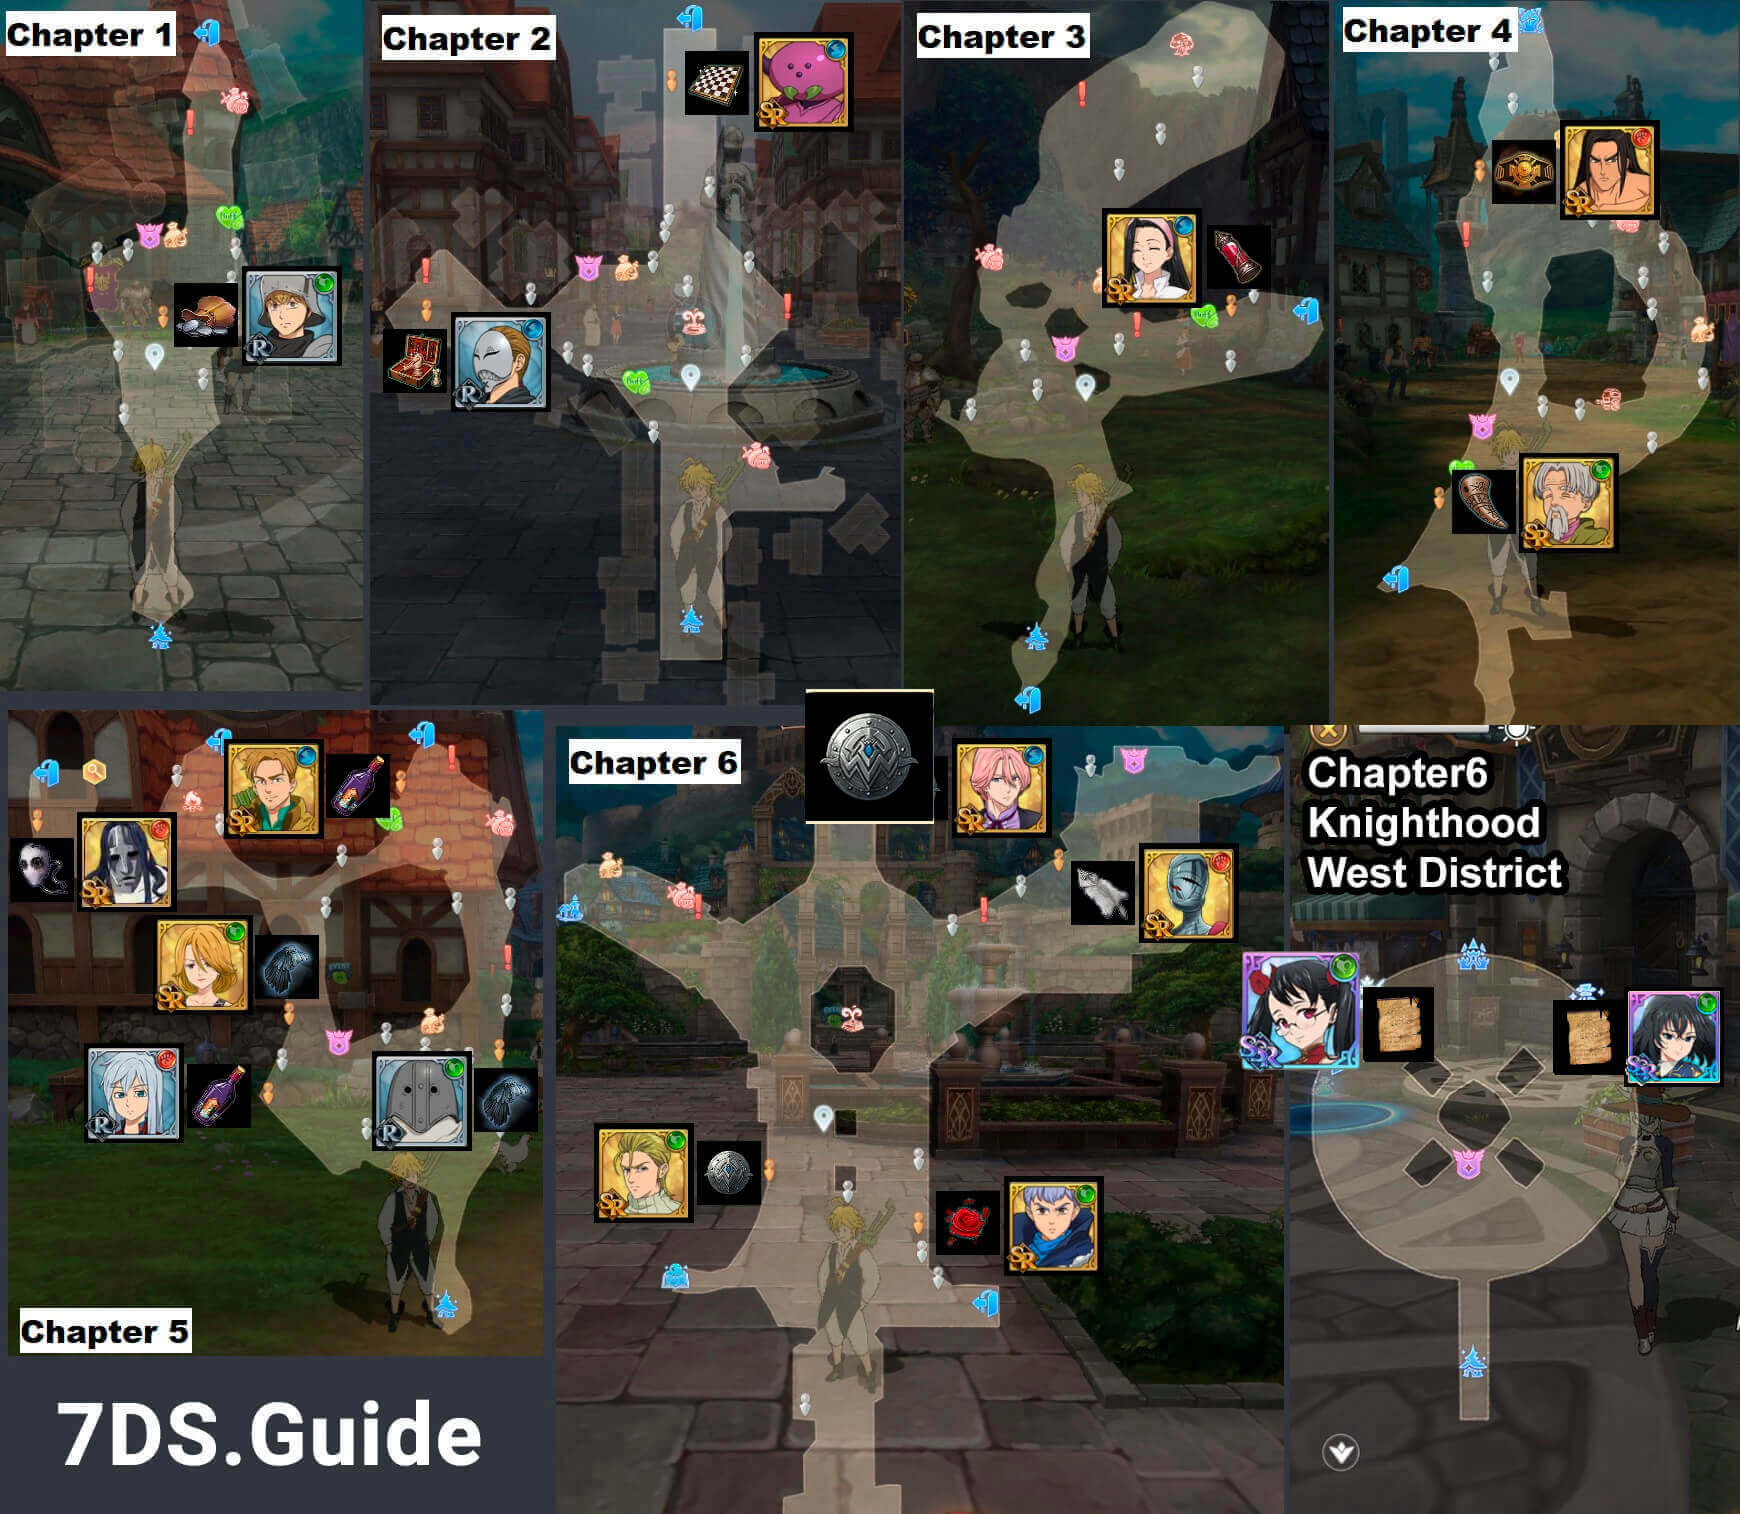 7ds affection gifts locations